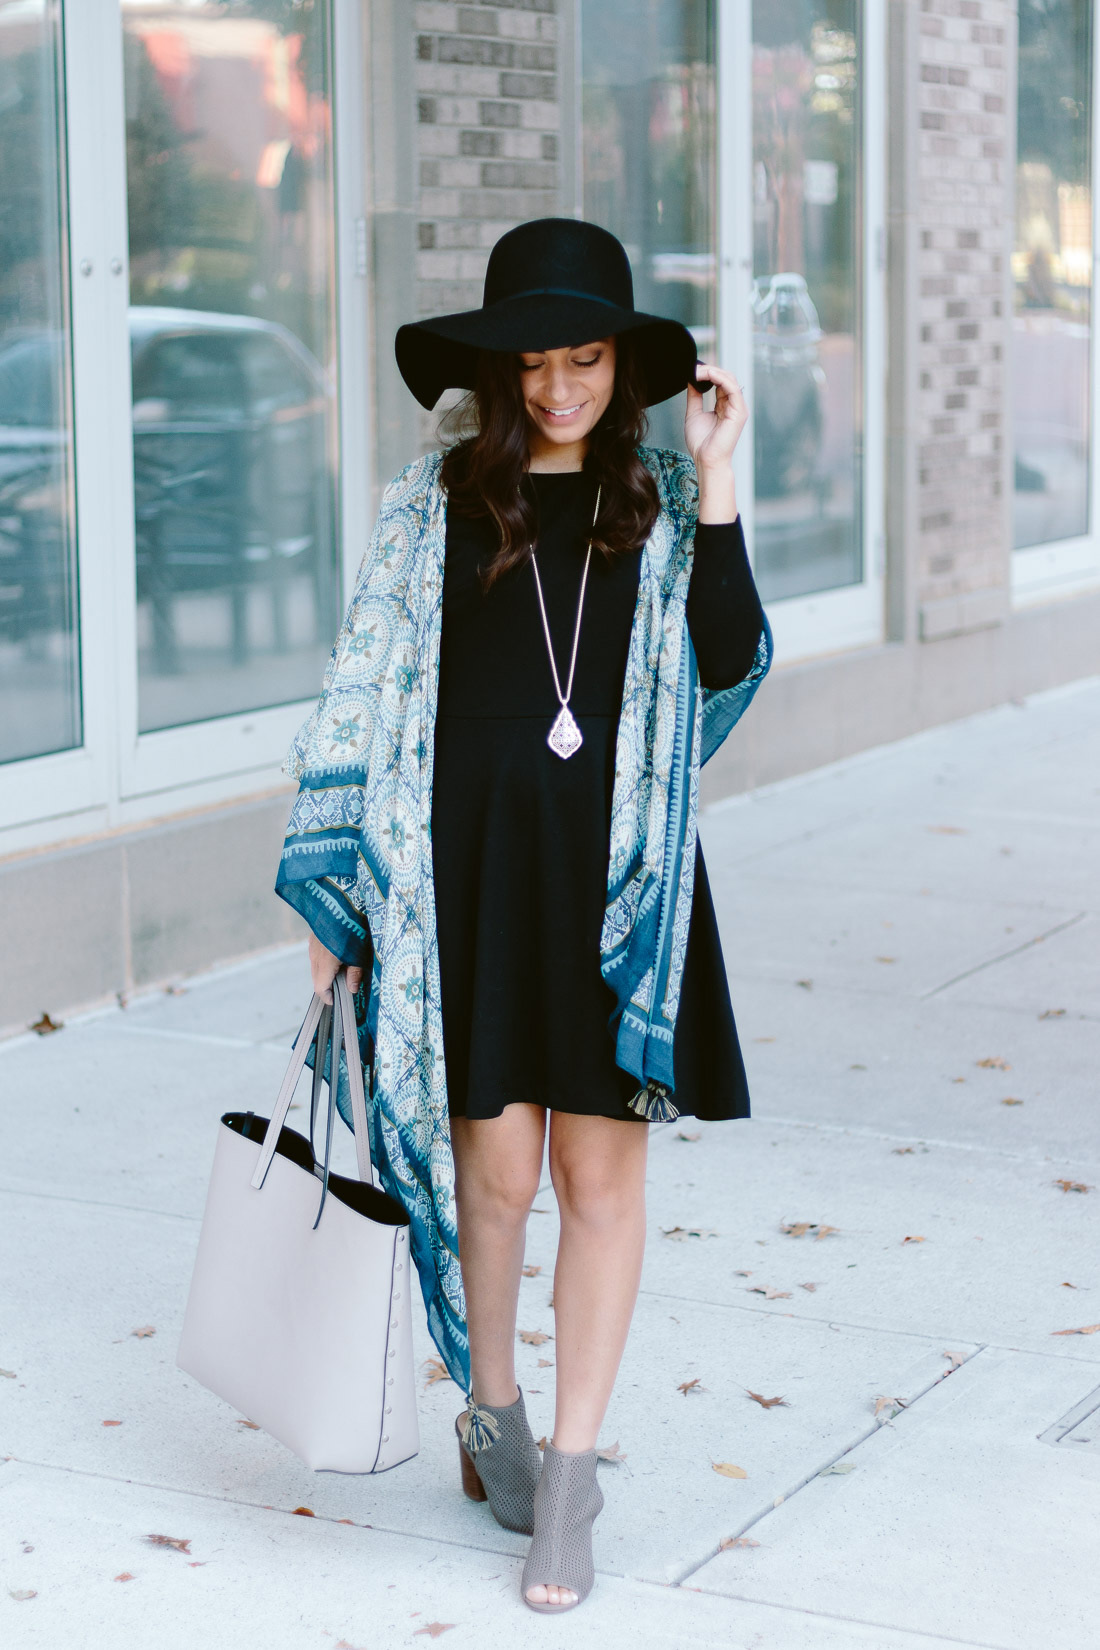 Black dress for fall on petite style blogger Brooke of Pumps & Push-Ups